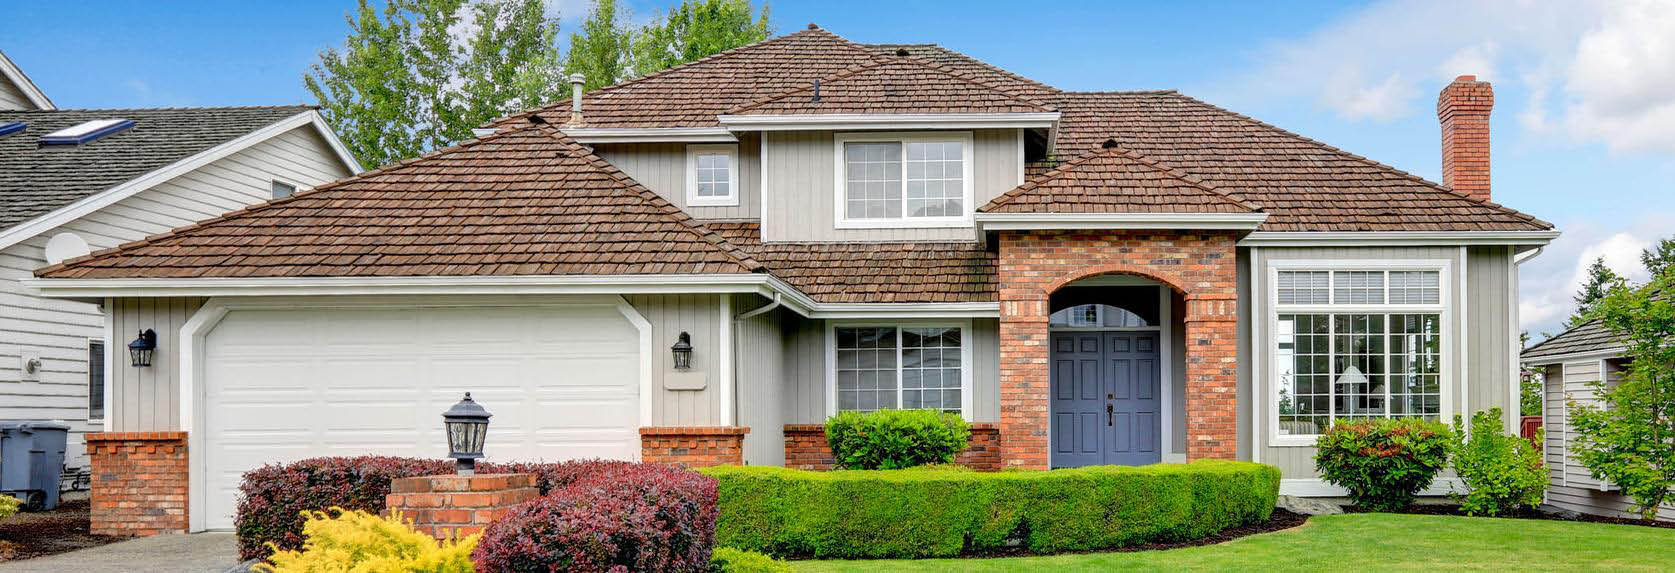 jl roofing,roofing, siding,gutters,doors,windows,roof repairs,gutter installation,install